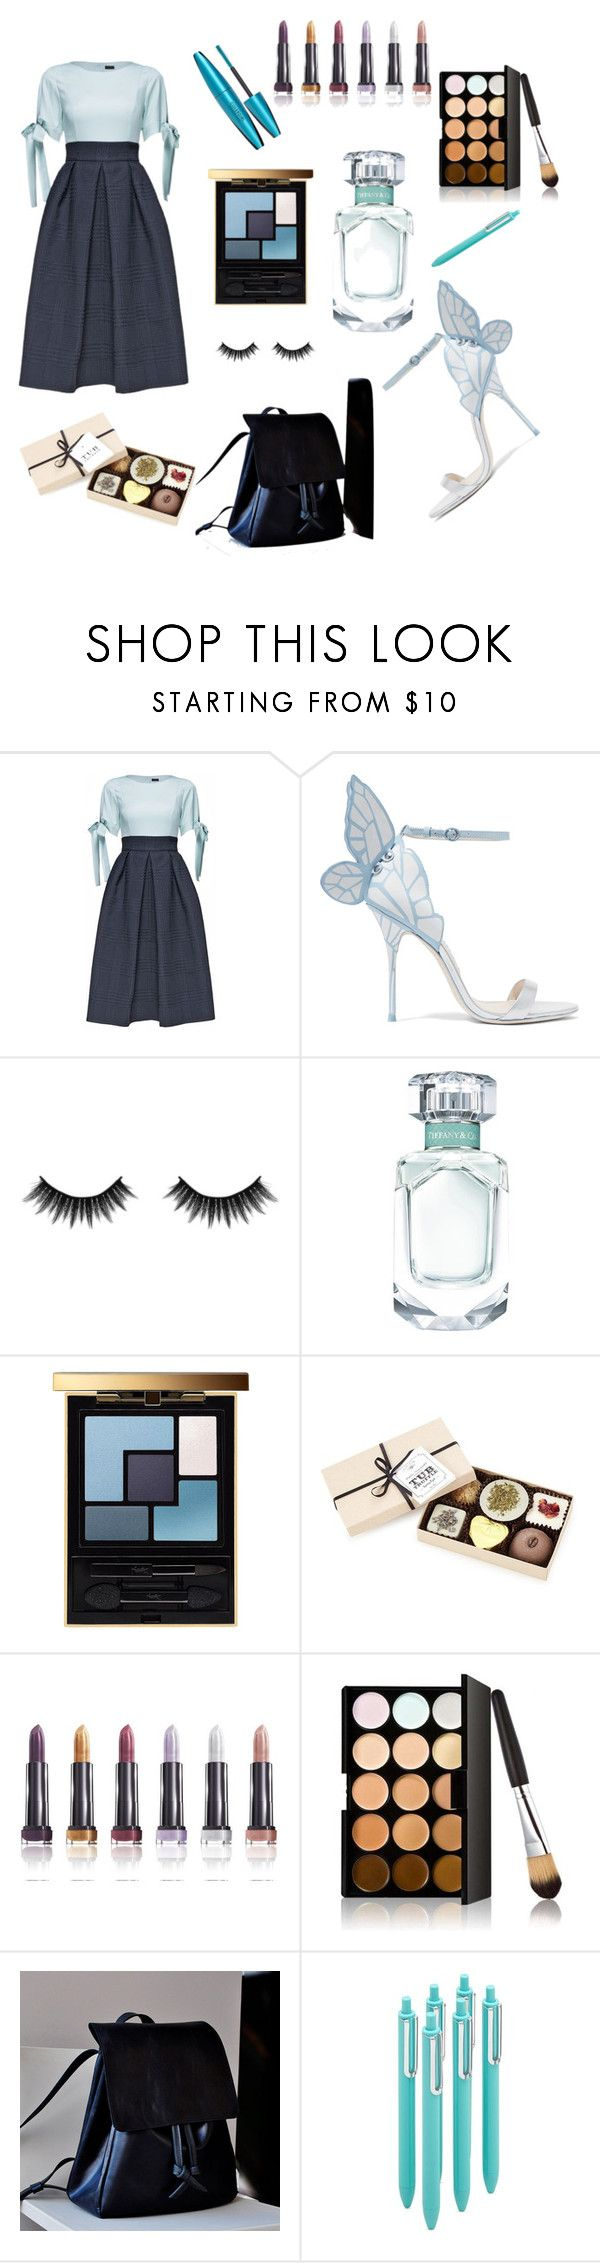 """""""Office party dress look"""" by miloni-jhaveri ❤ liked on Polyvore featuring Lattori, Sophia Webster, Morphe, Yves Saint Laurent and poppin."""